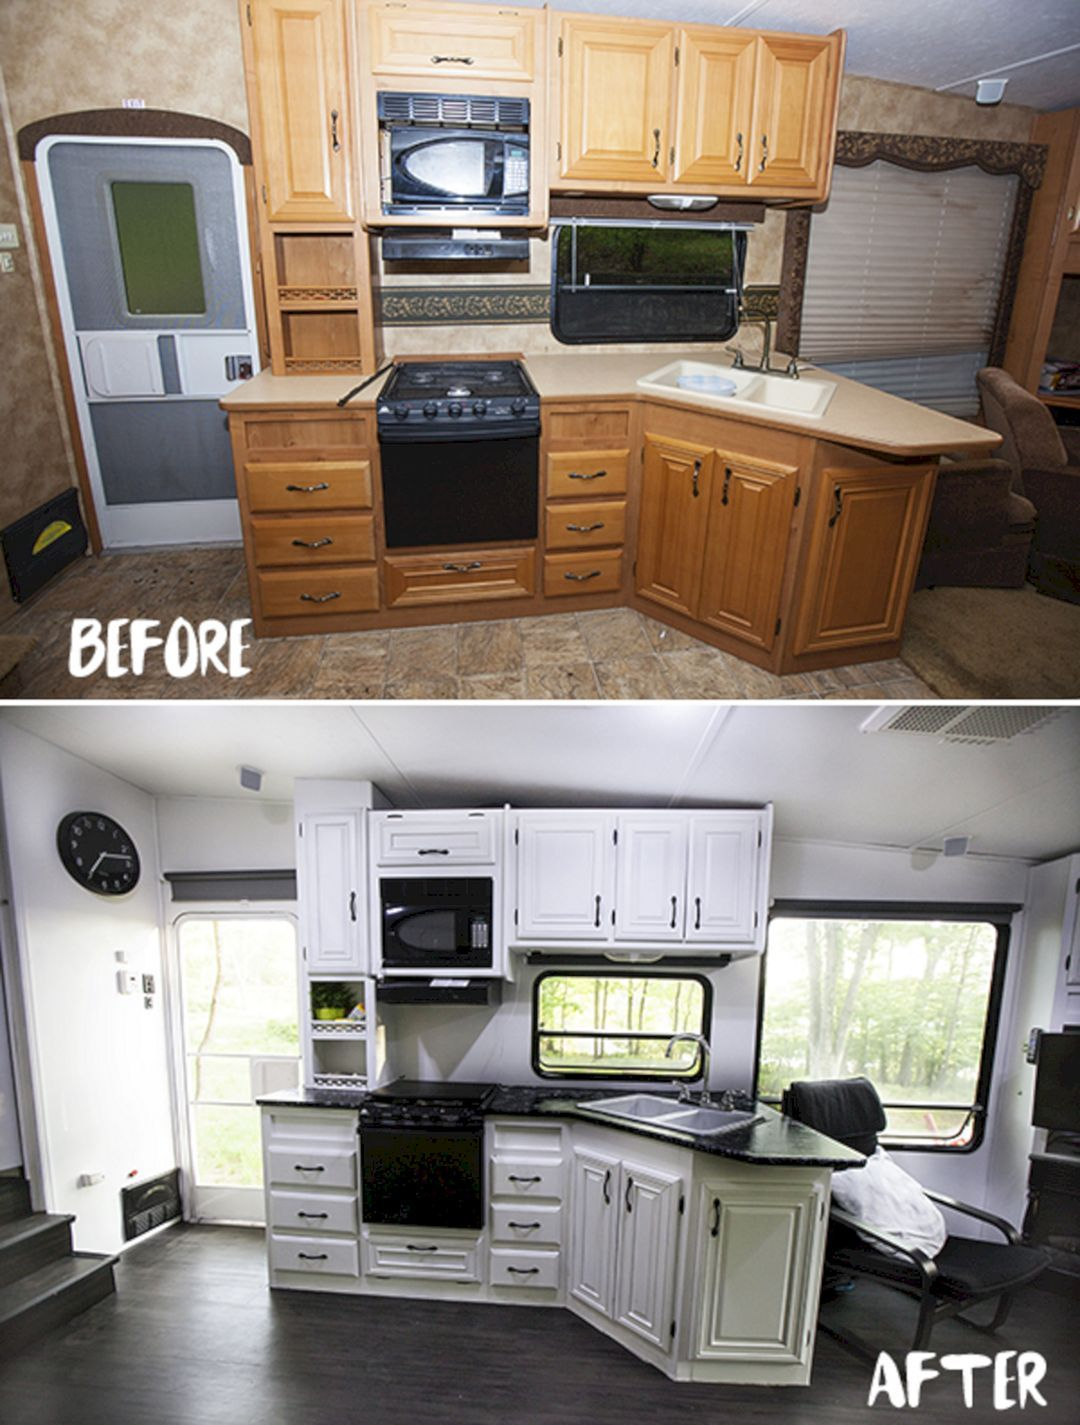 42+ amazing rv camper makeover ideas before and after collections